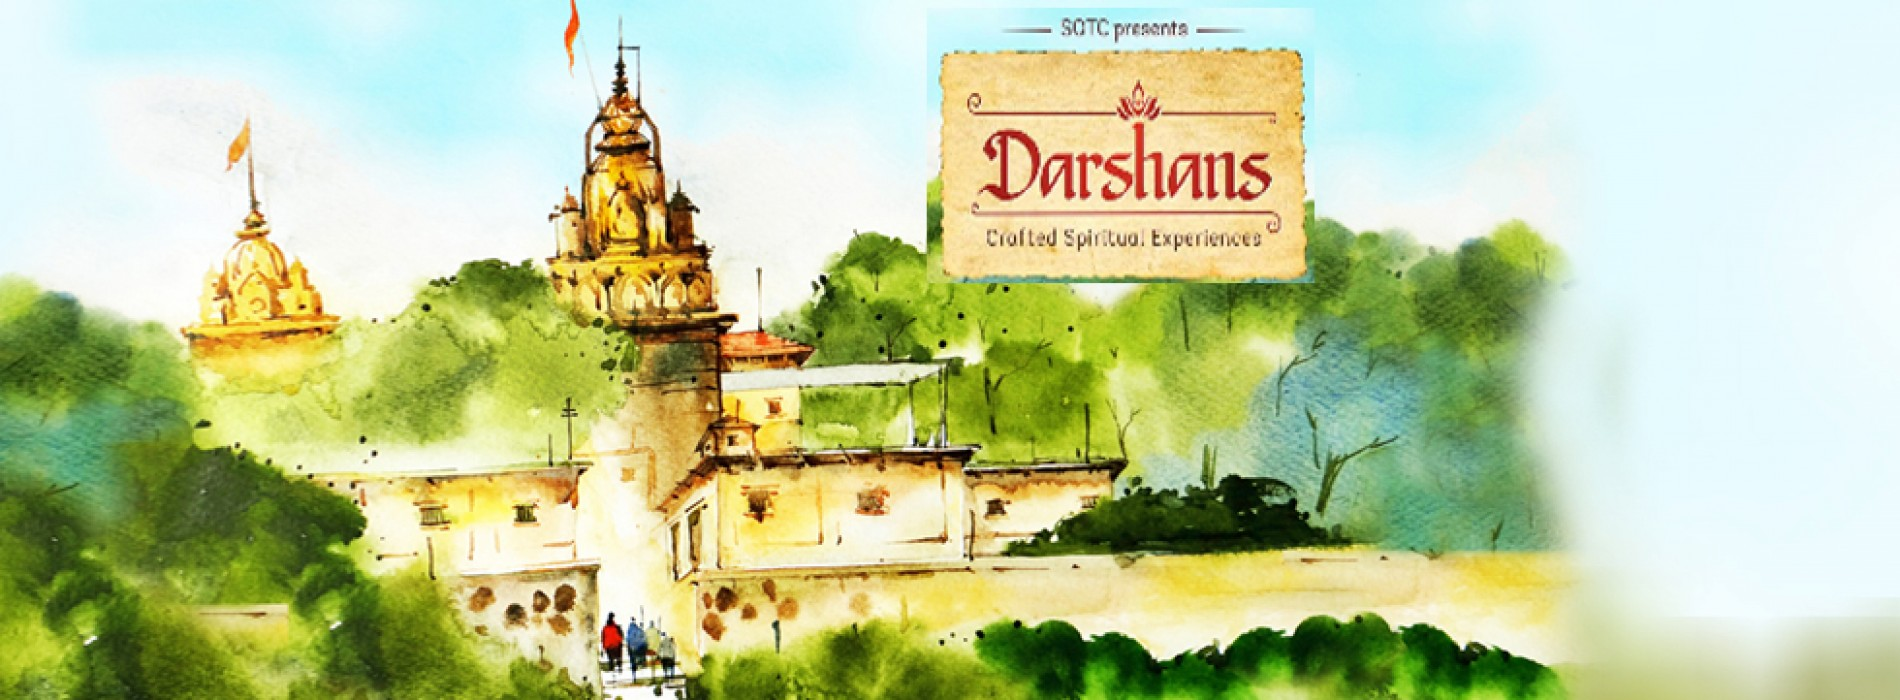 SOTC launches Darshans crafted spiritual experiences